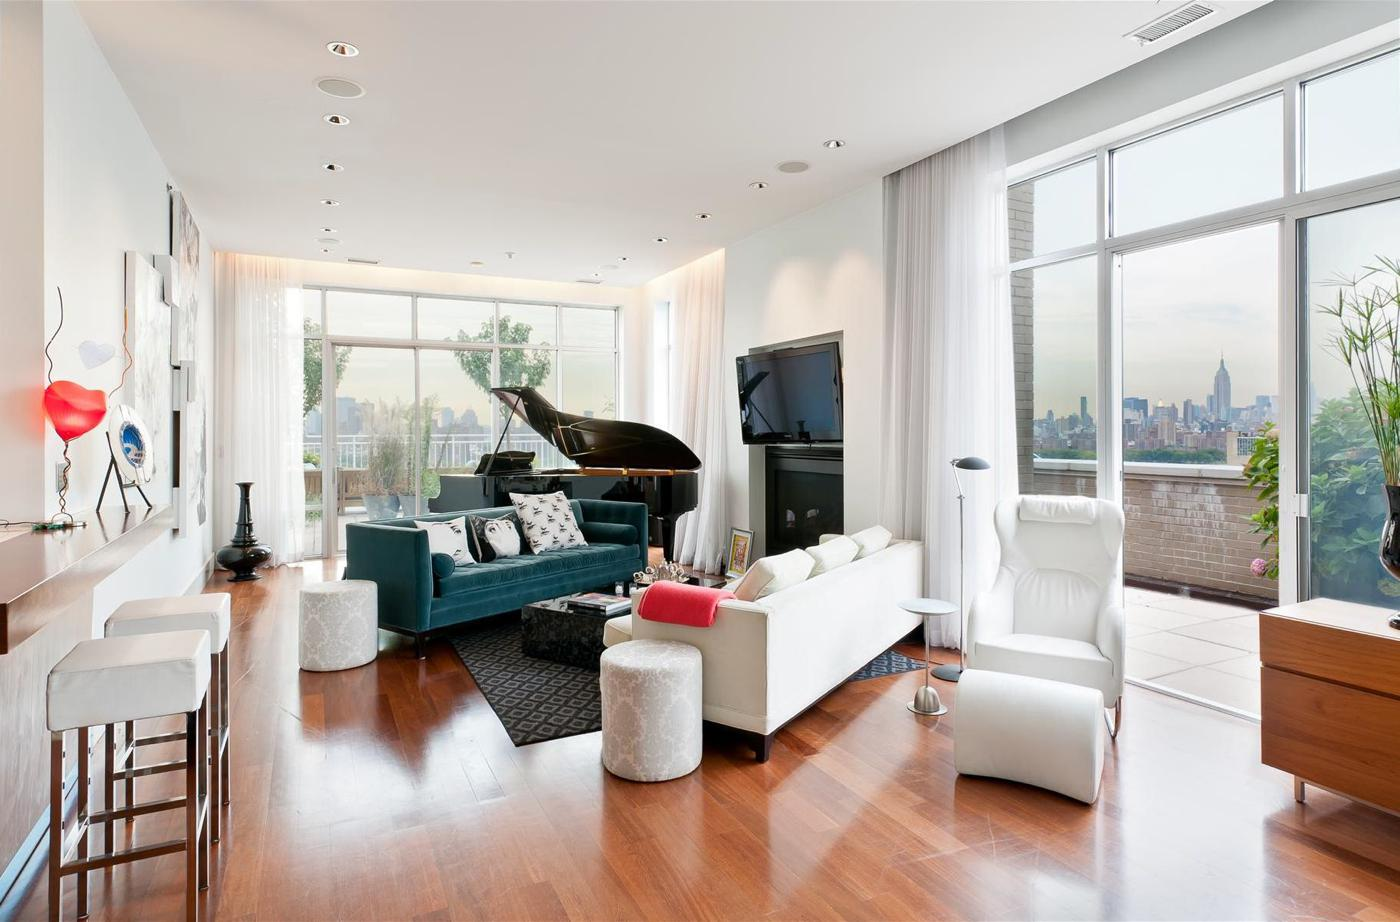 12 Amazing New York Loft Apartments That Will Give You A Serious Case Of Home Envy! (6)